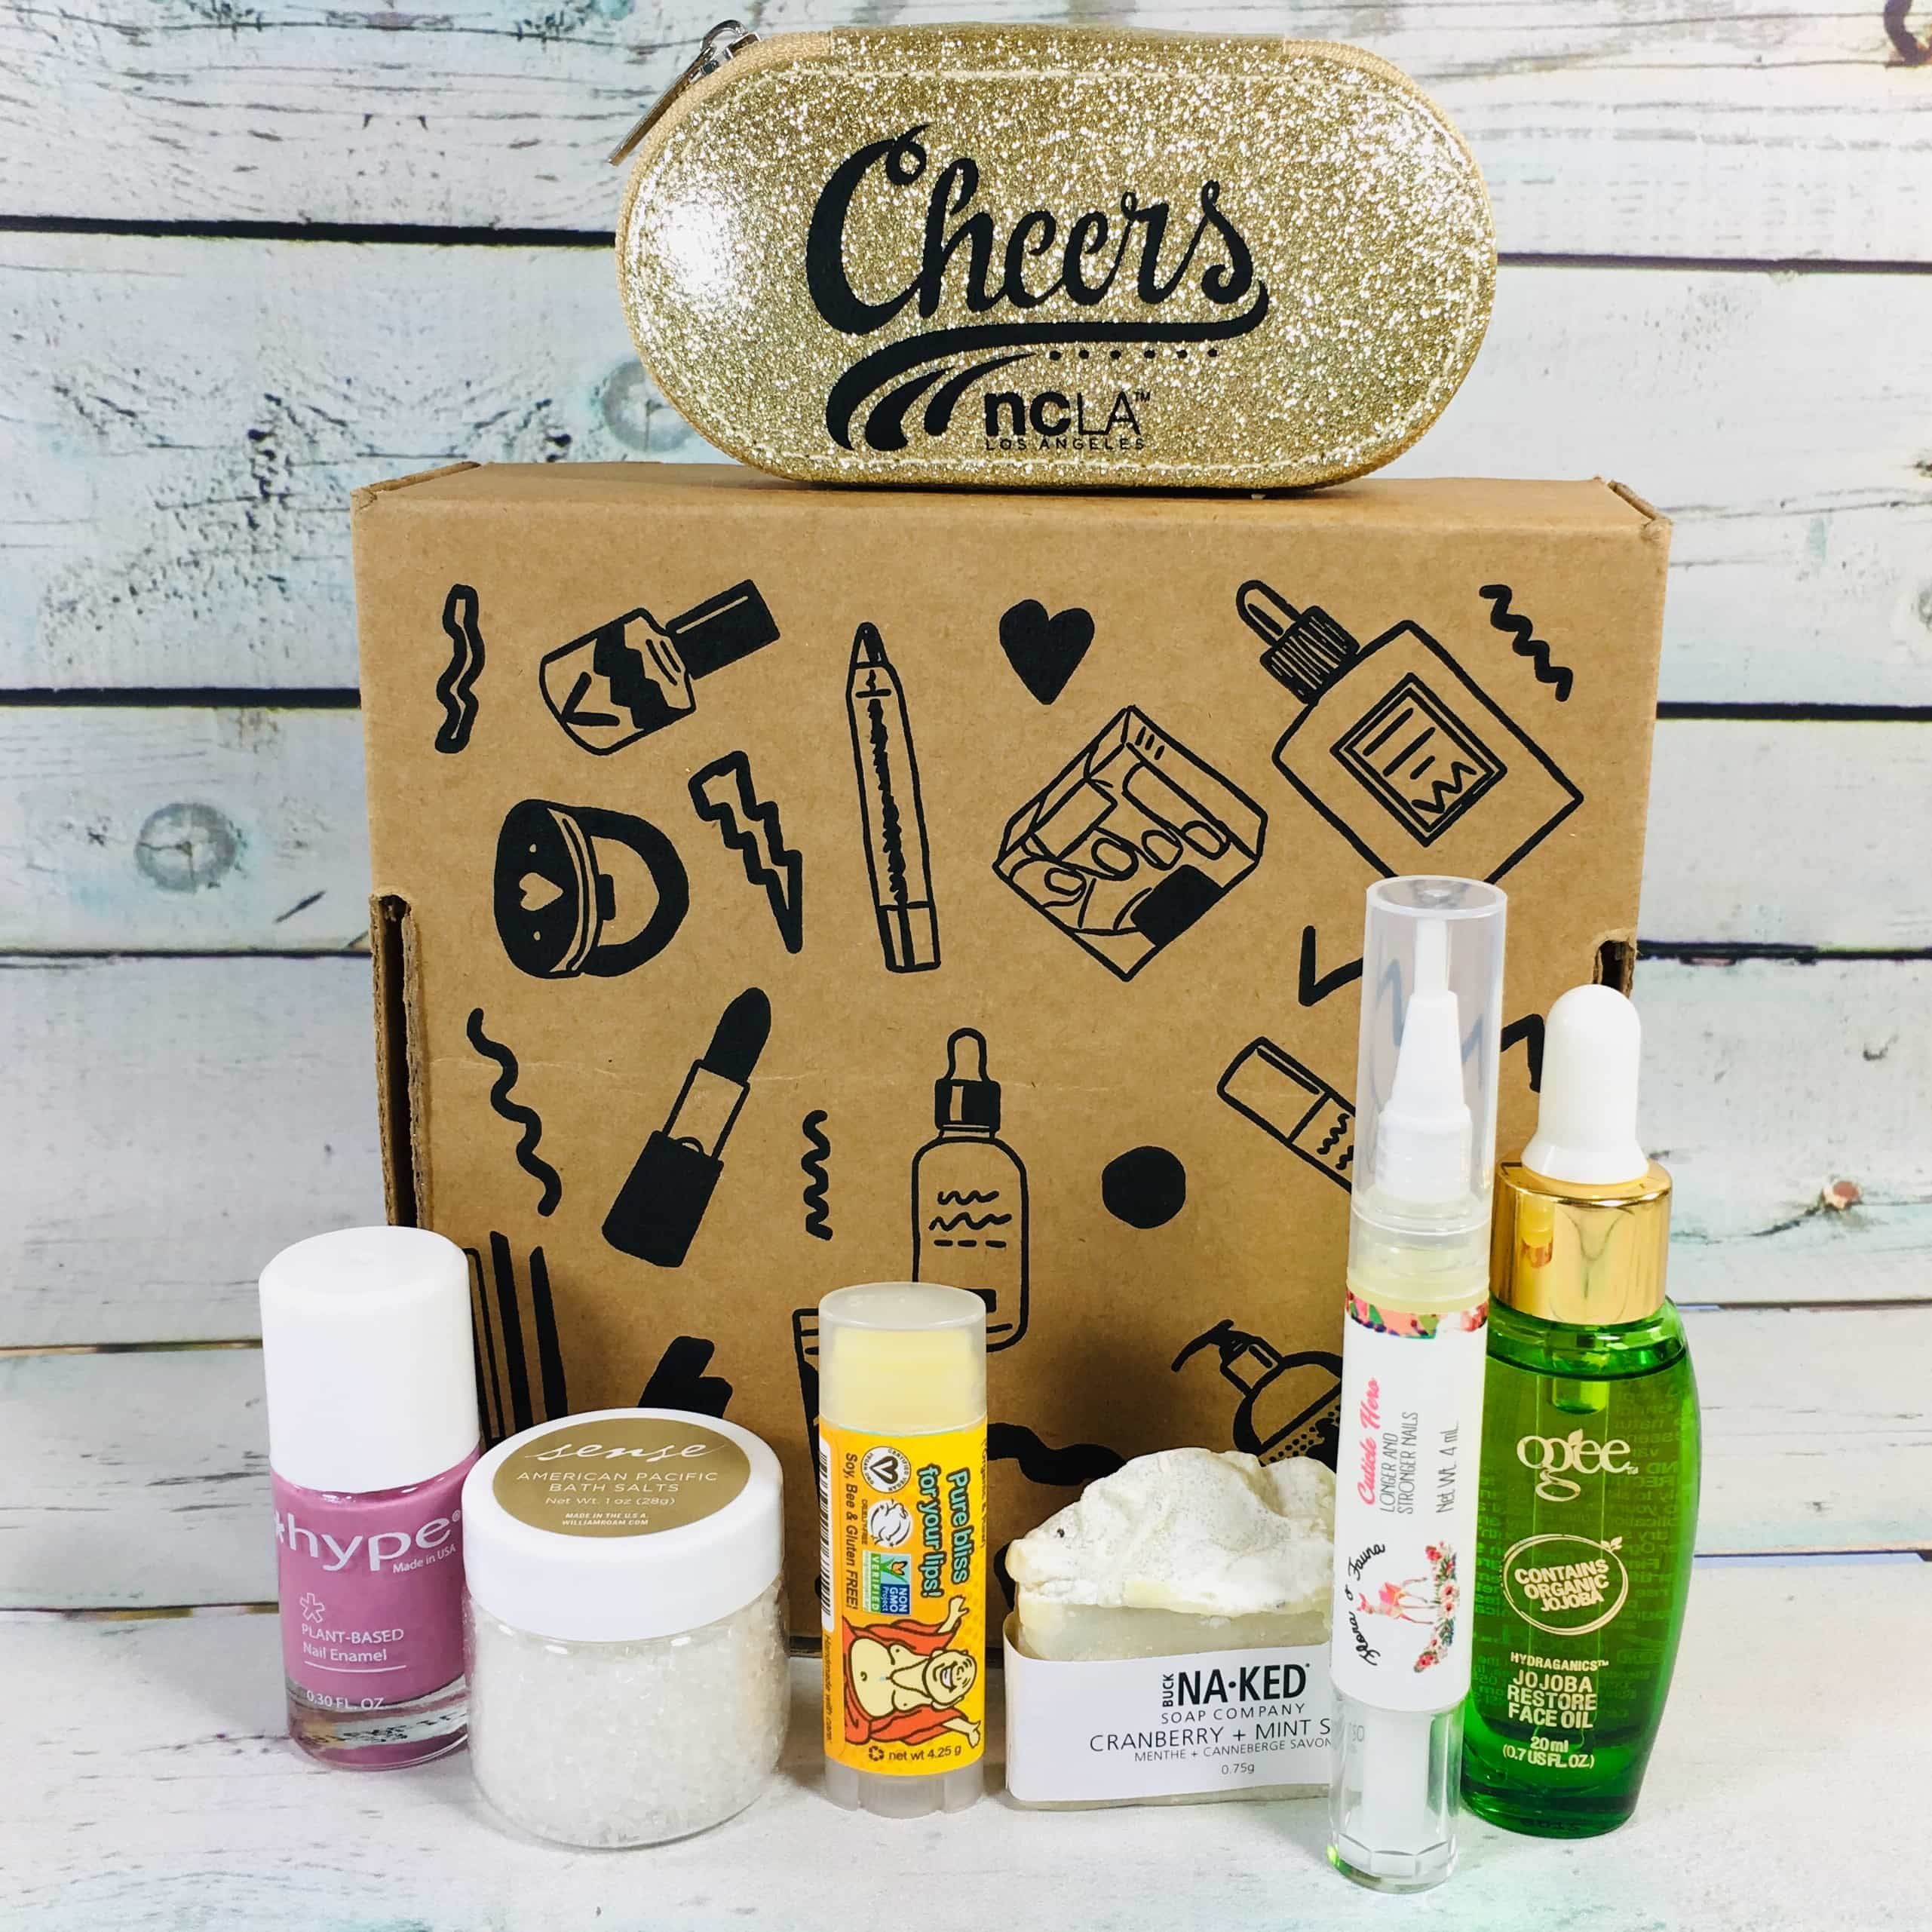 Vegan Cuts Beauty Box December 2018 Subscription Box Review